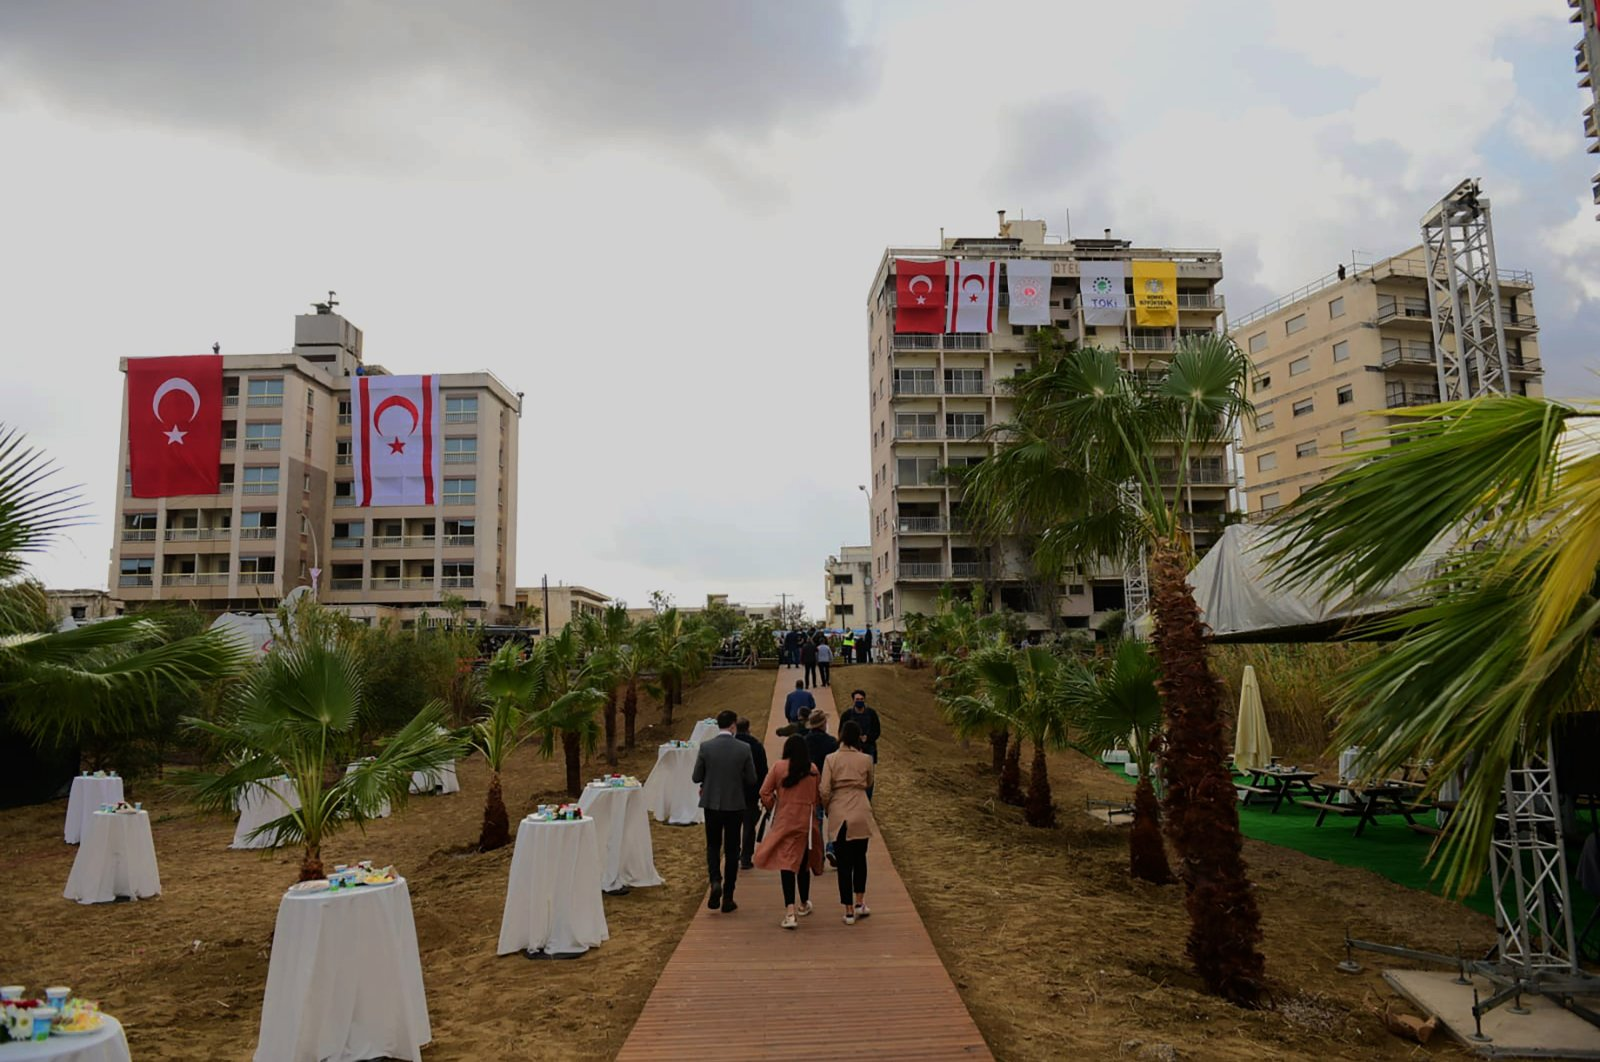 People walk in front of abandoned buildings adorned with Turkish and Turkish Cyprus flags before Turkish President Recep Tayyip Erdoğan inspects the newly opened beachfront of Varosha, Turkish Cyprus, Nov. 15, 2020. (AP Photo)